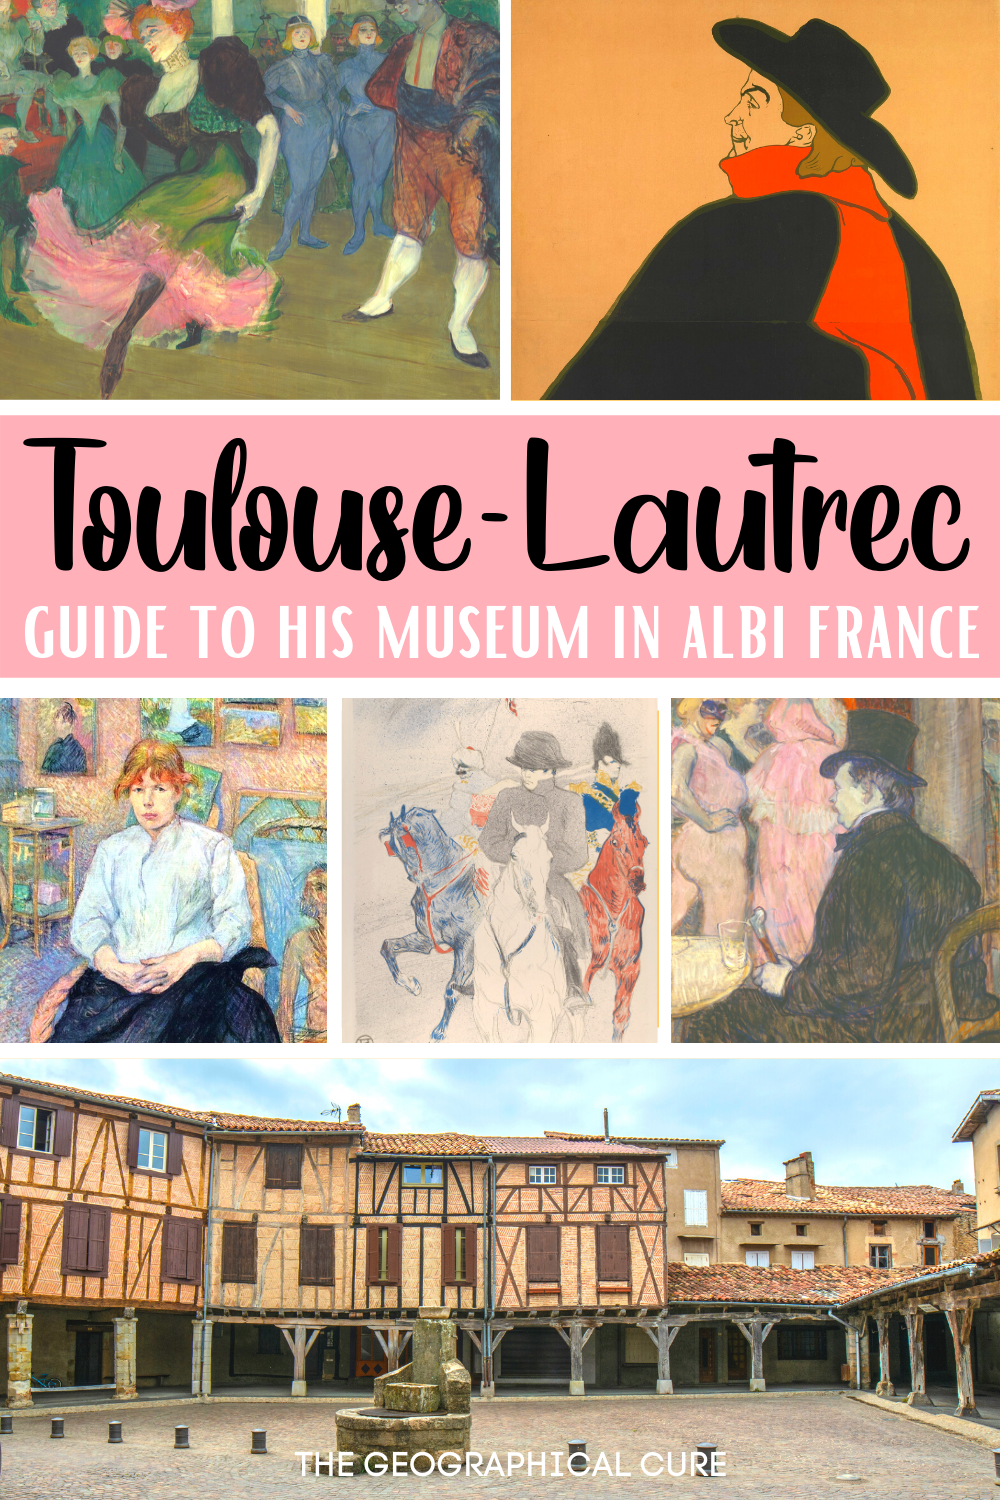 guide to the Toulouse-Lautrec Museum in Albi France